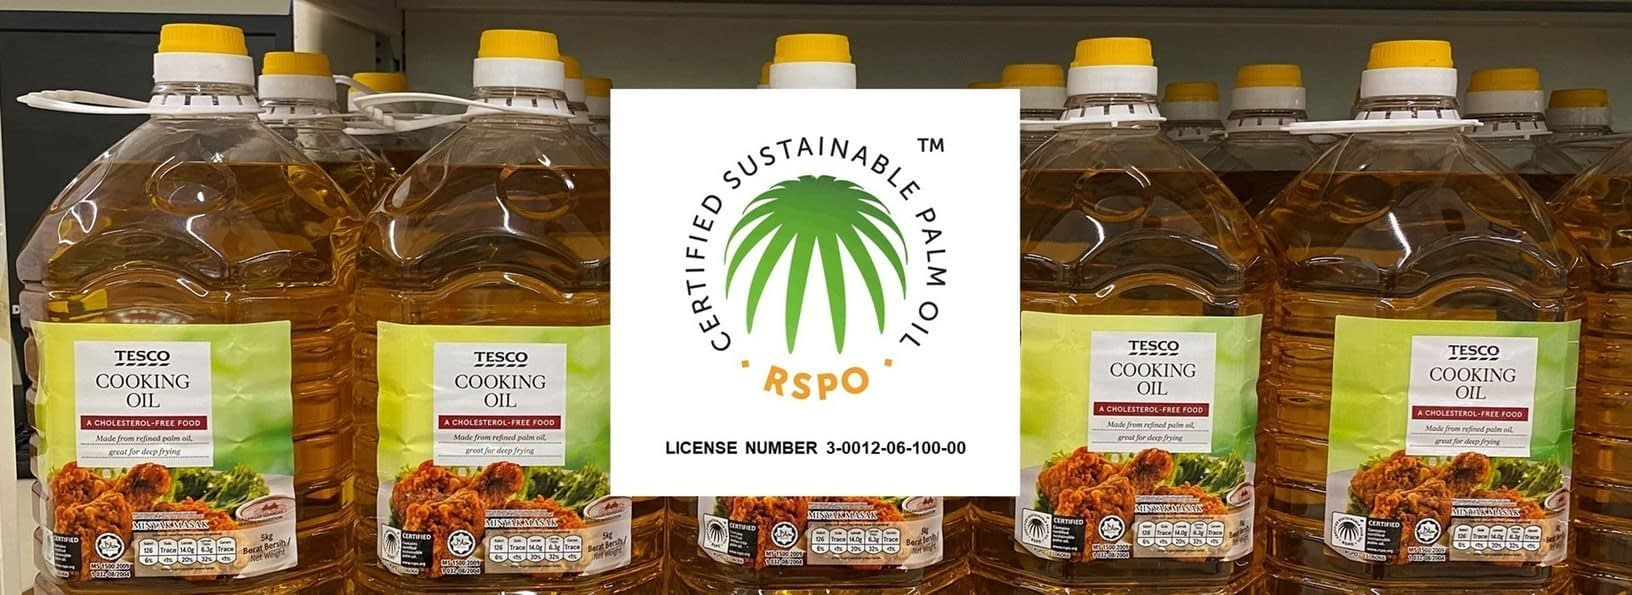 , Update on our progress on sourcing sustainable palm oil – achieving 100% RSPO certification and beyond, TheCircularEconomy.com